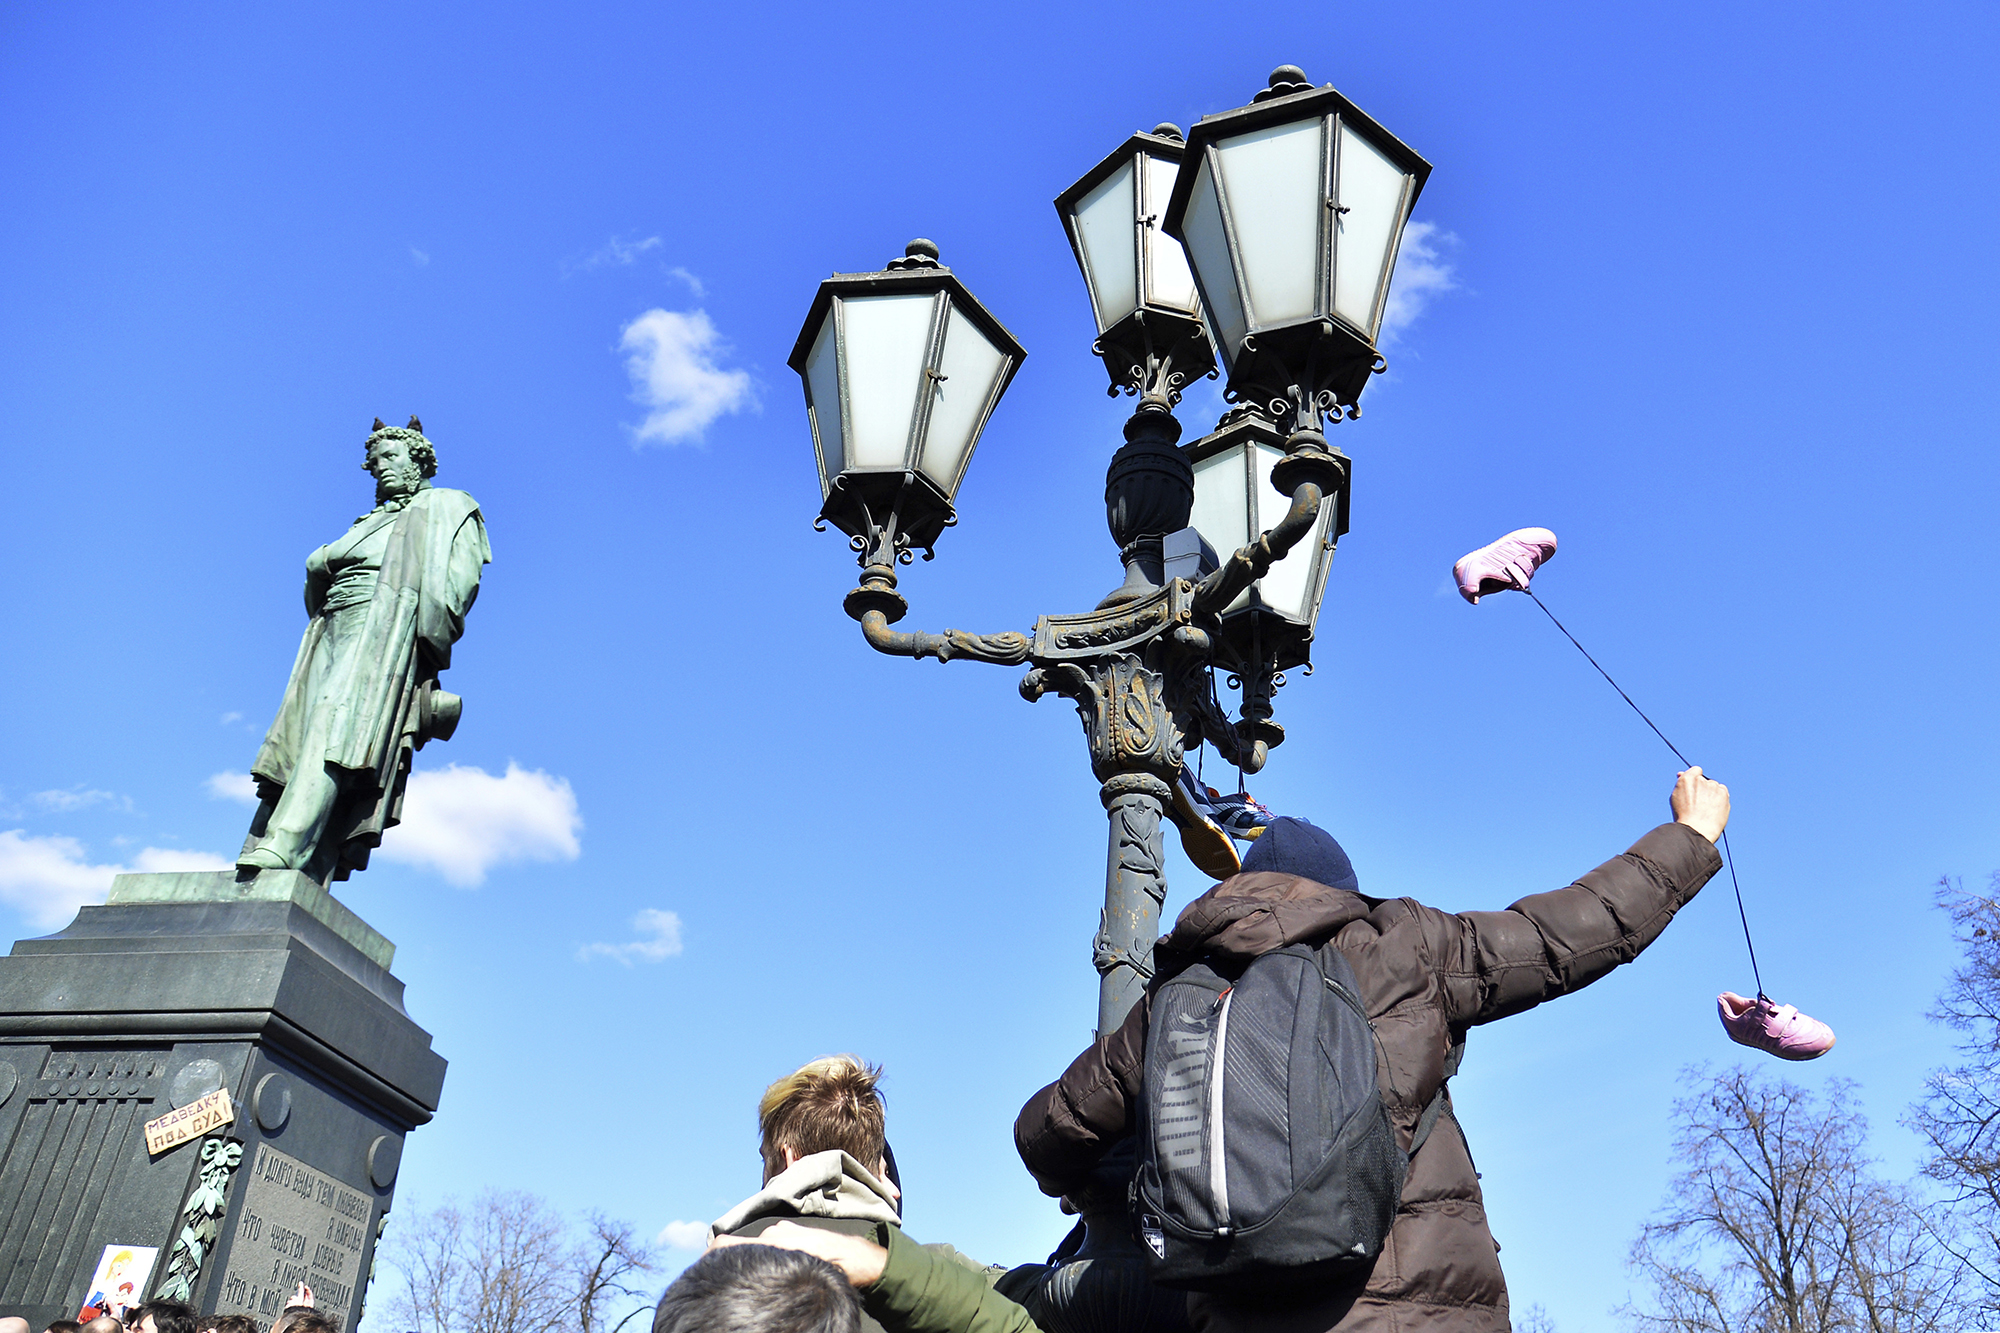 People hang trainers, which have become a symbol of corruption, from a lamppost in Moscow, Russia, on March 26, 2017.